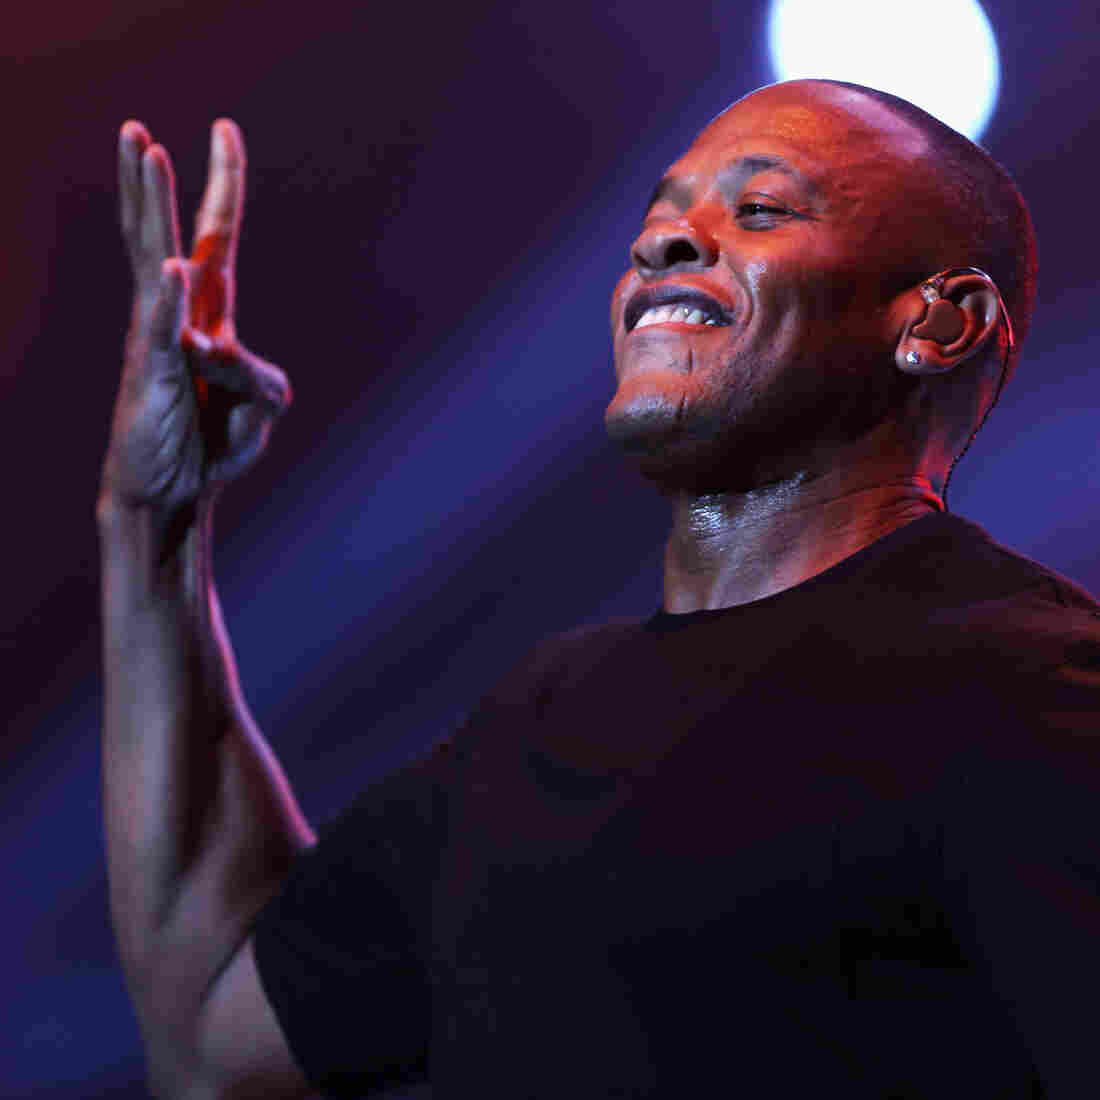 Rapper Dr. Dre is an executive at Apple, now.